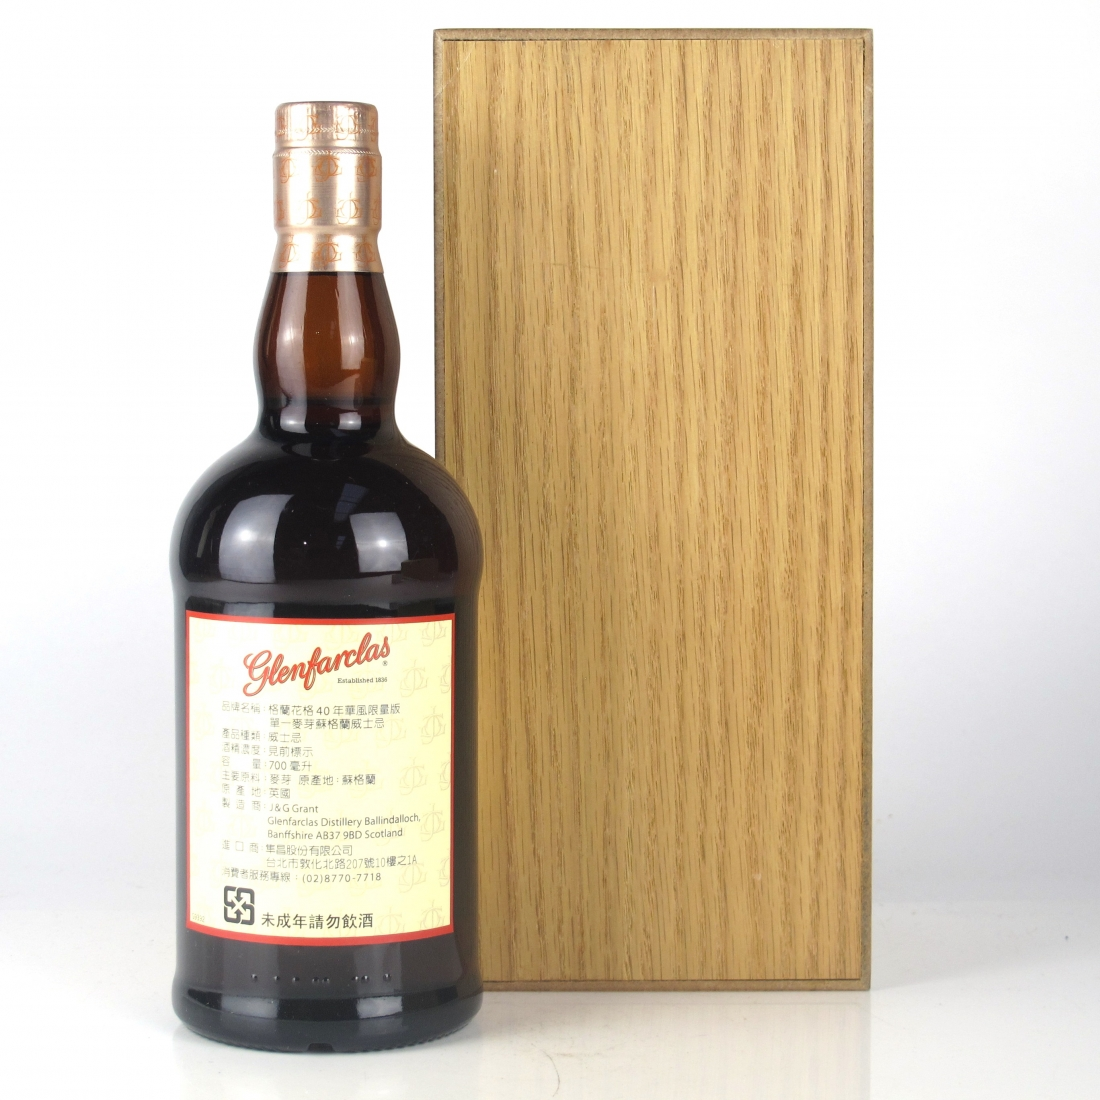 Glenfarclas 40 Year Old 2014 Edition